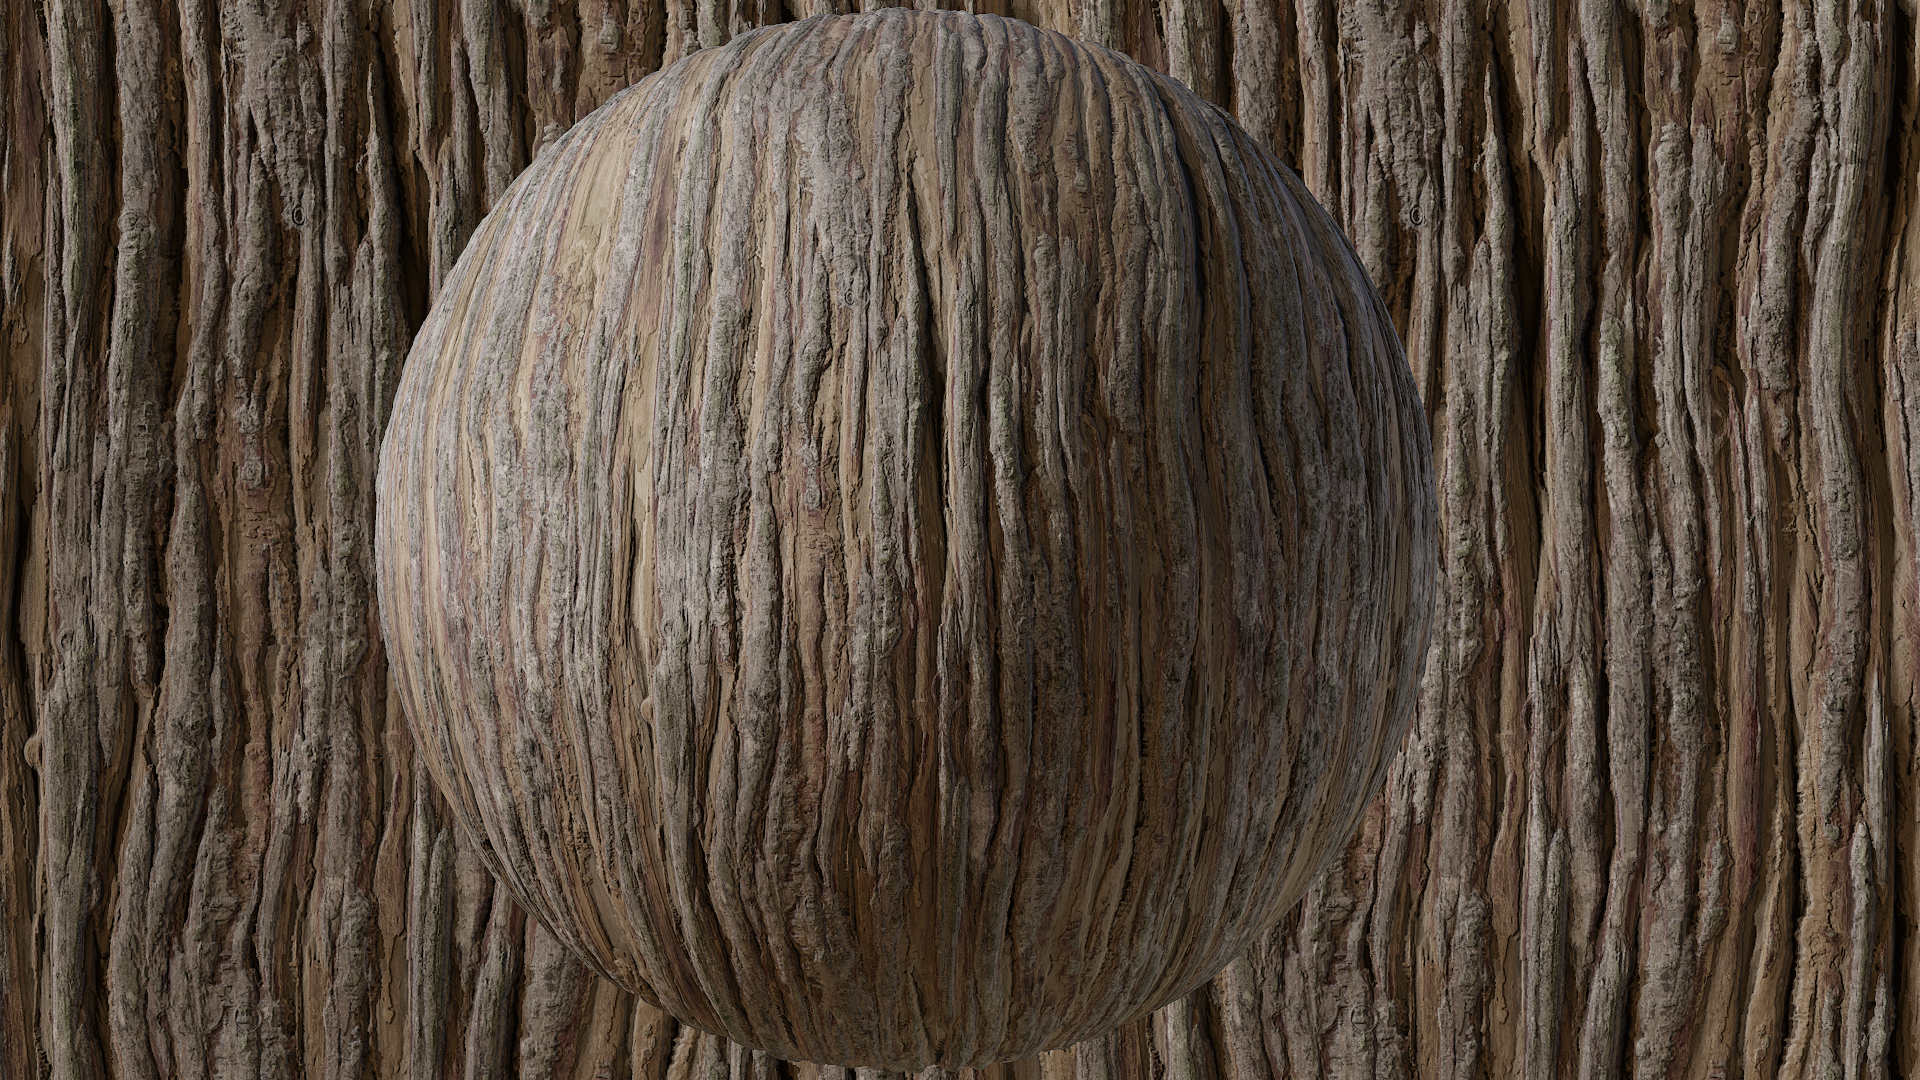 cyrpess wood substance material